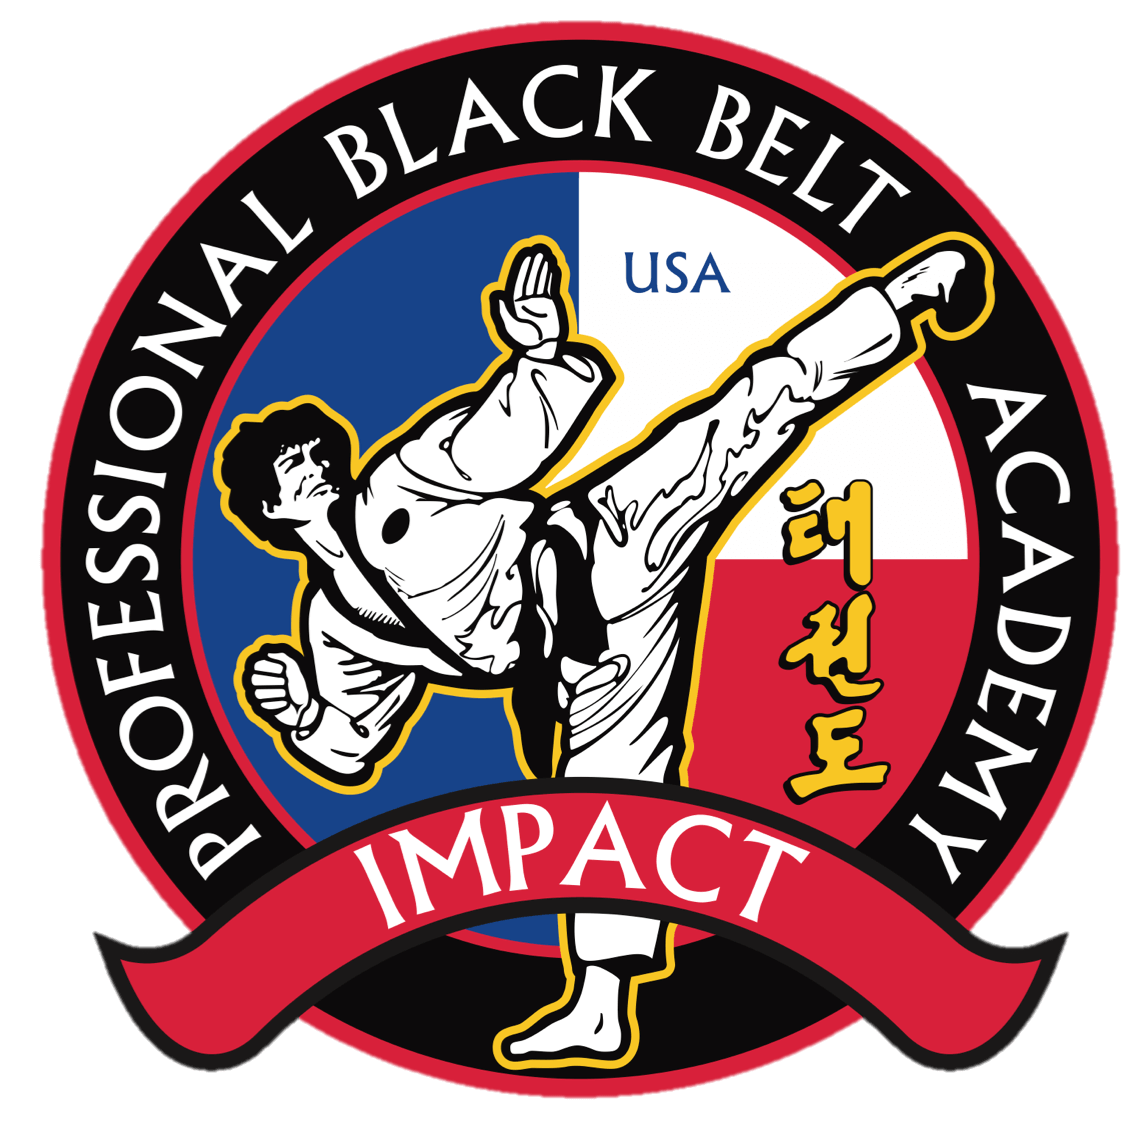 Fist clipart hapkido, Fist hapkido Transparent FREE for.